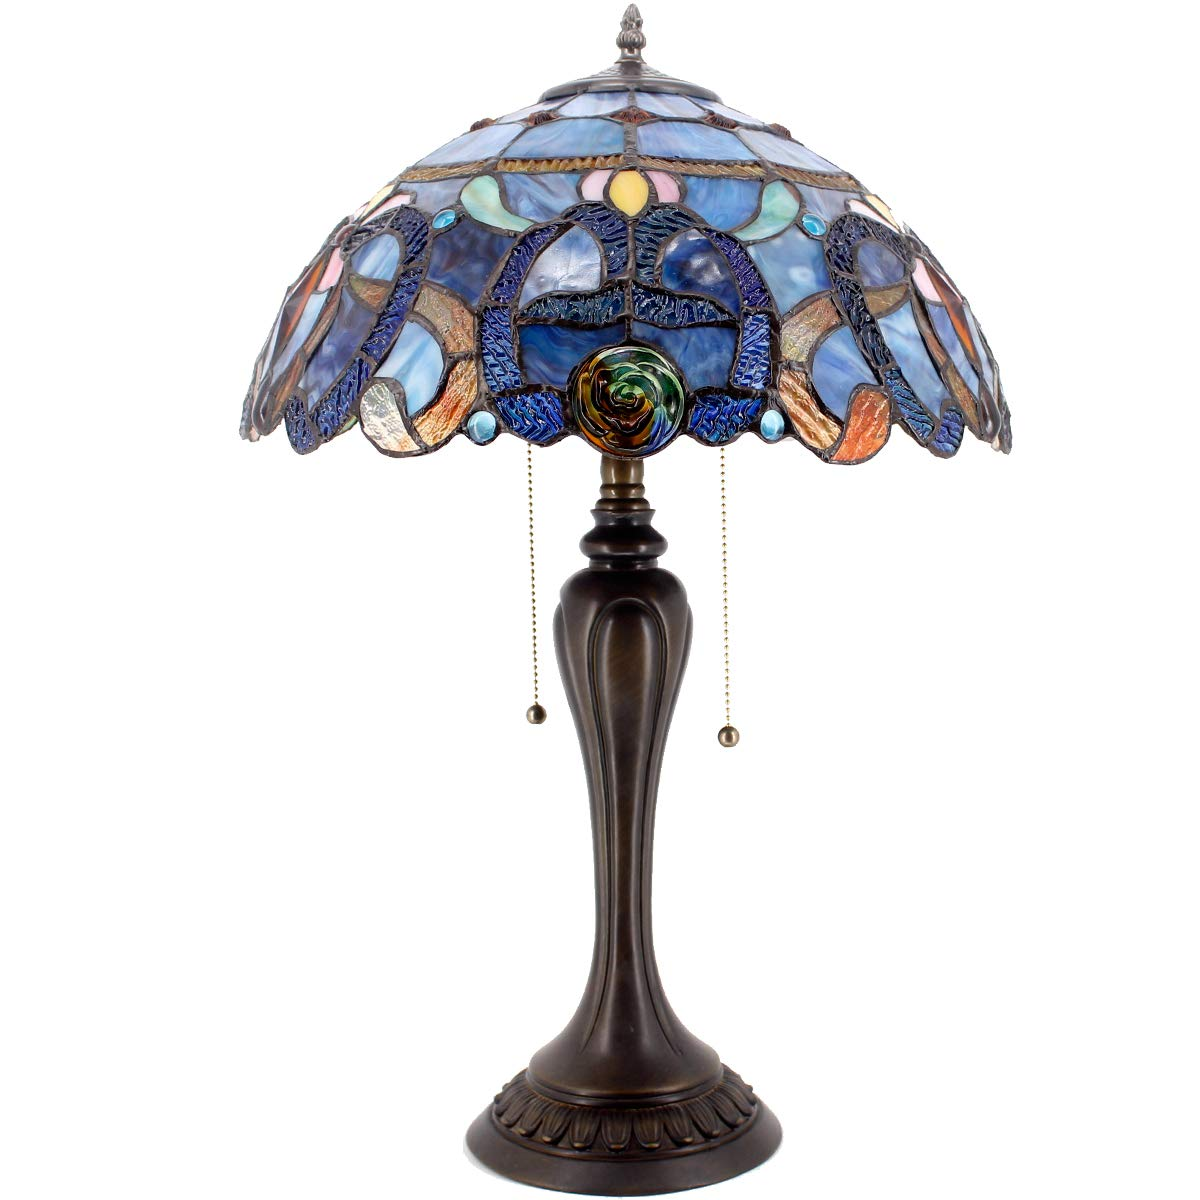 Stained Glass Lamps Tiffany Style Table Lamp 24 Inch Tall 12 Inch Wide Blue Purple Cloudly Crystal Flower Shade 2 Light Pull Chain ForLiving Room Bedroom Coffee Desk Beside Dresser S558 WERFACTORY